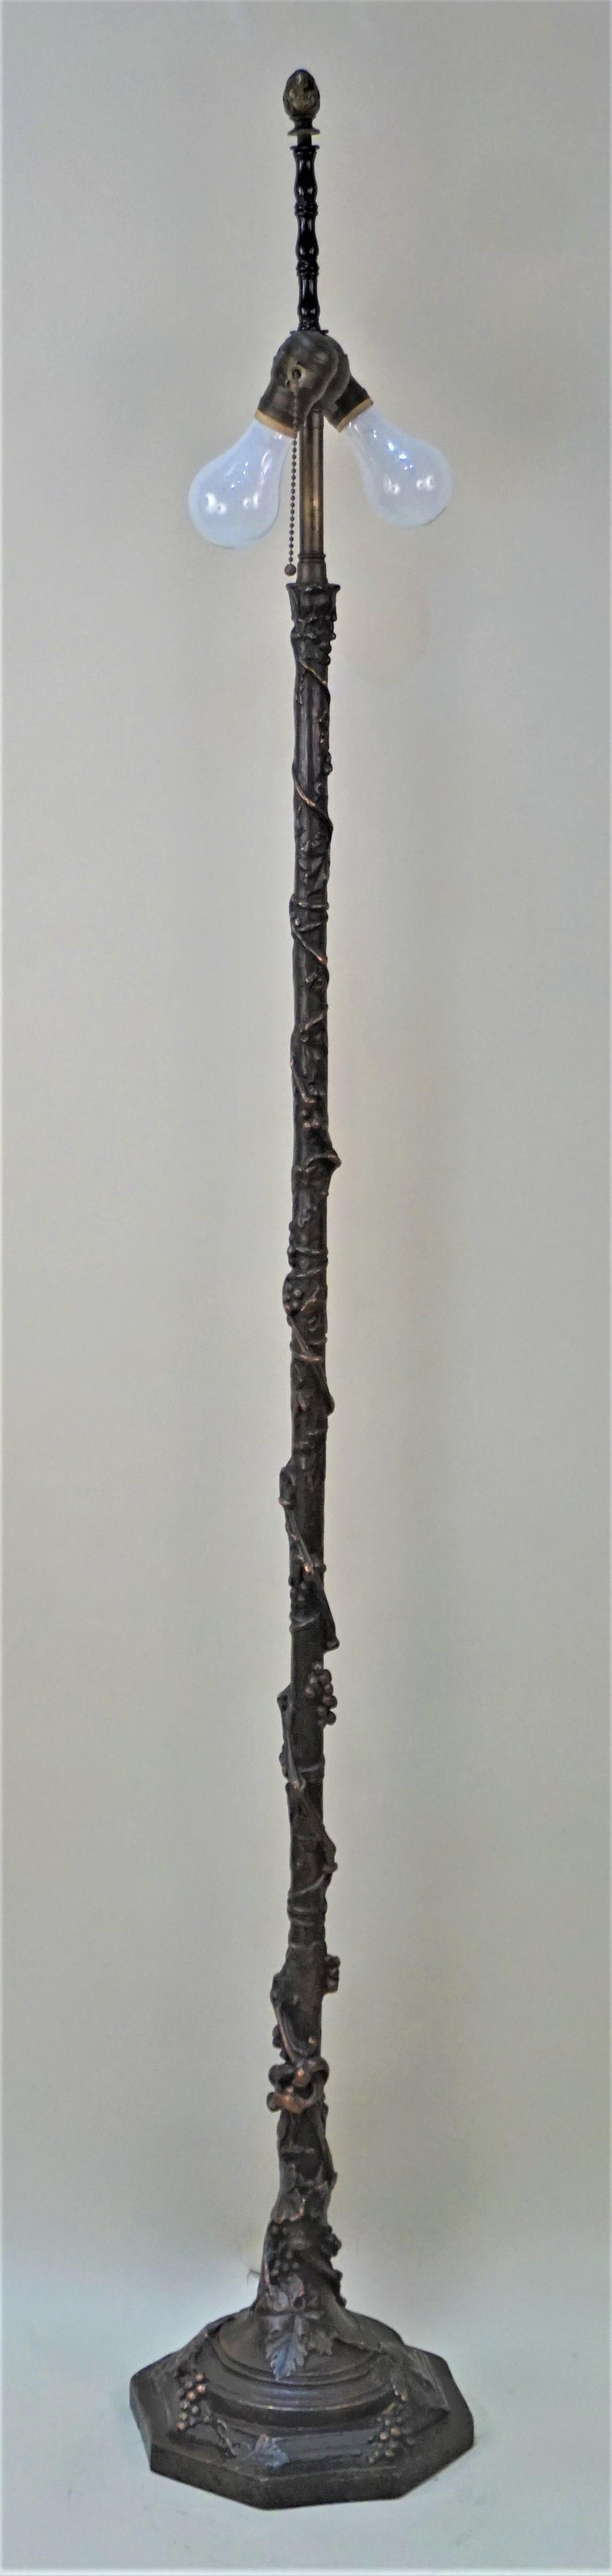 American Arts & Crafts Copper Floor Lamp For Sale 4